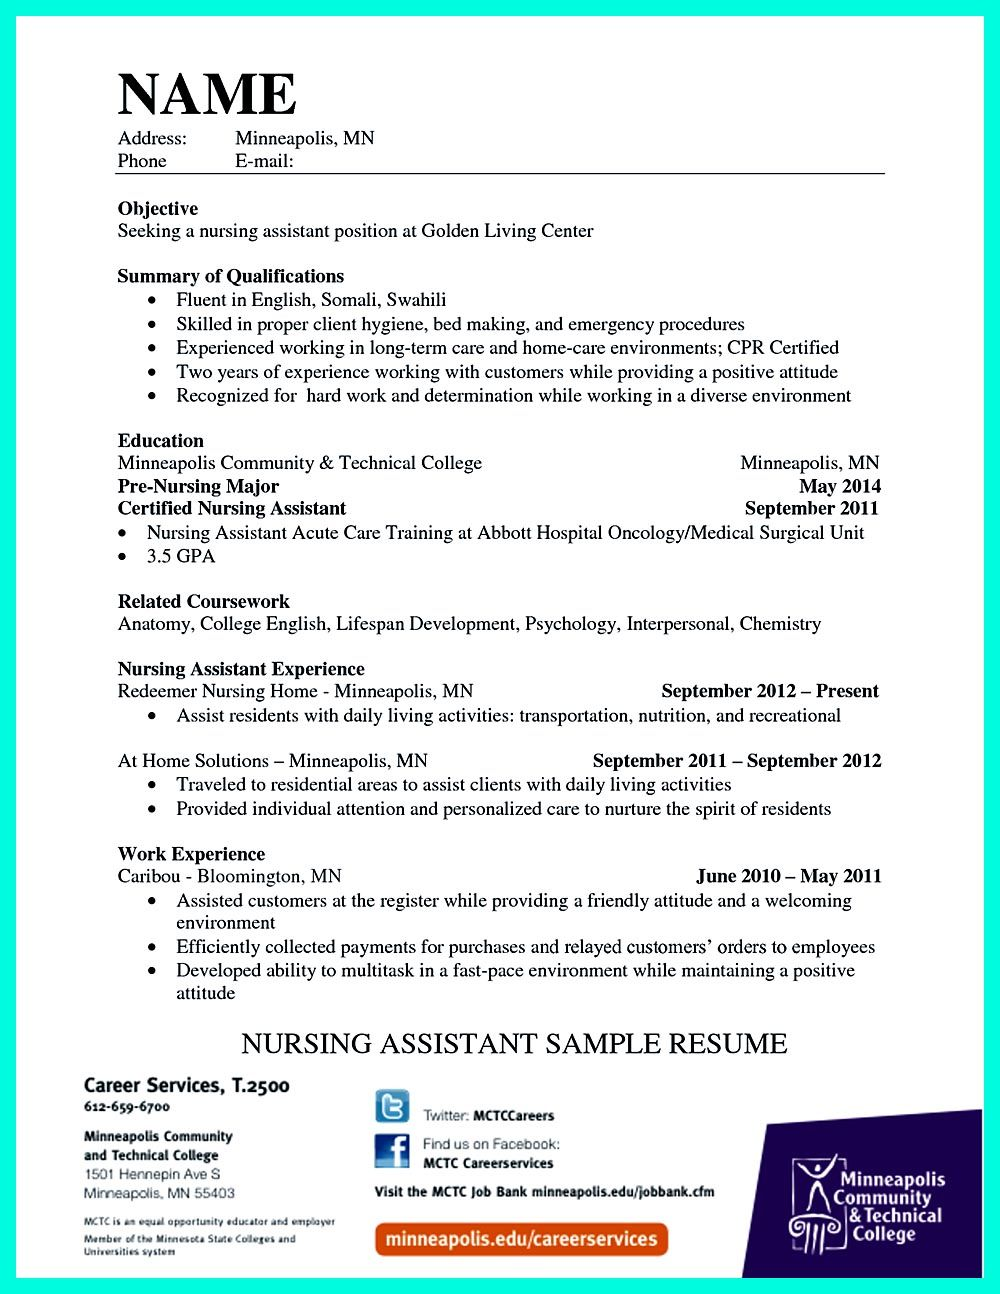 Sample Resume For Nursing Assistant Writing Certified Nursing Assistant Resume Is Simple If You Follow .